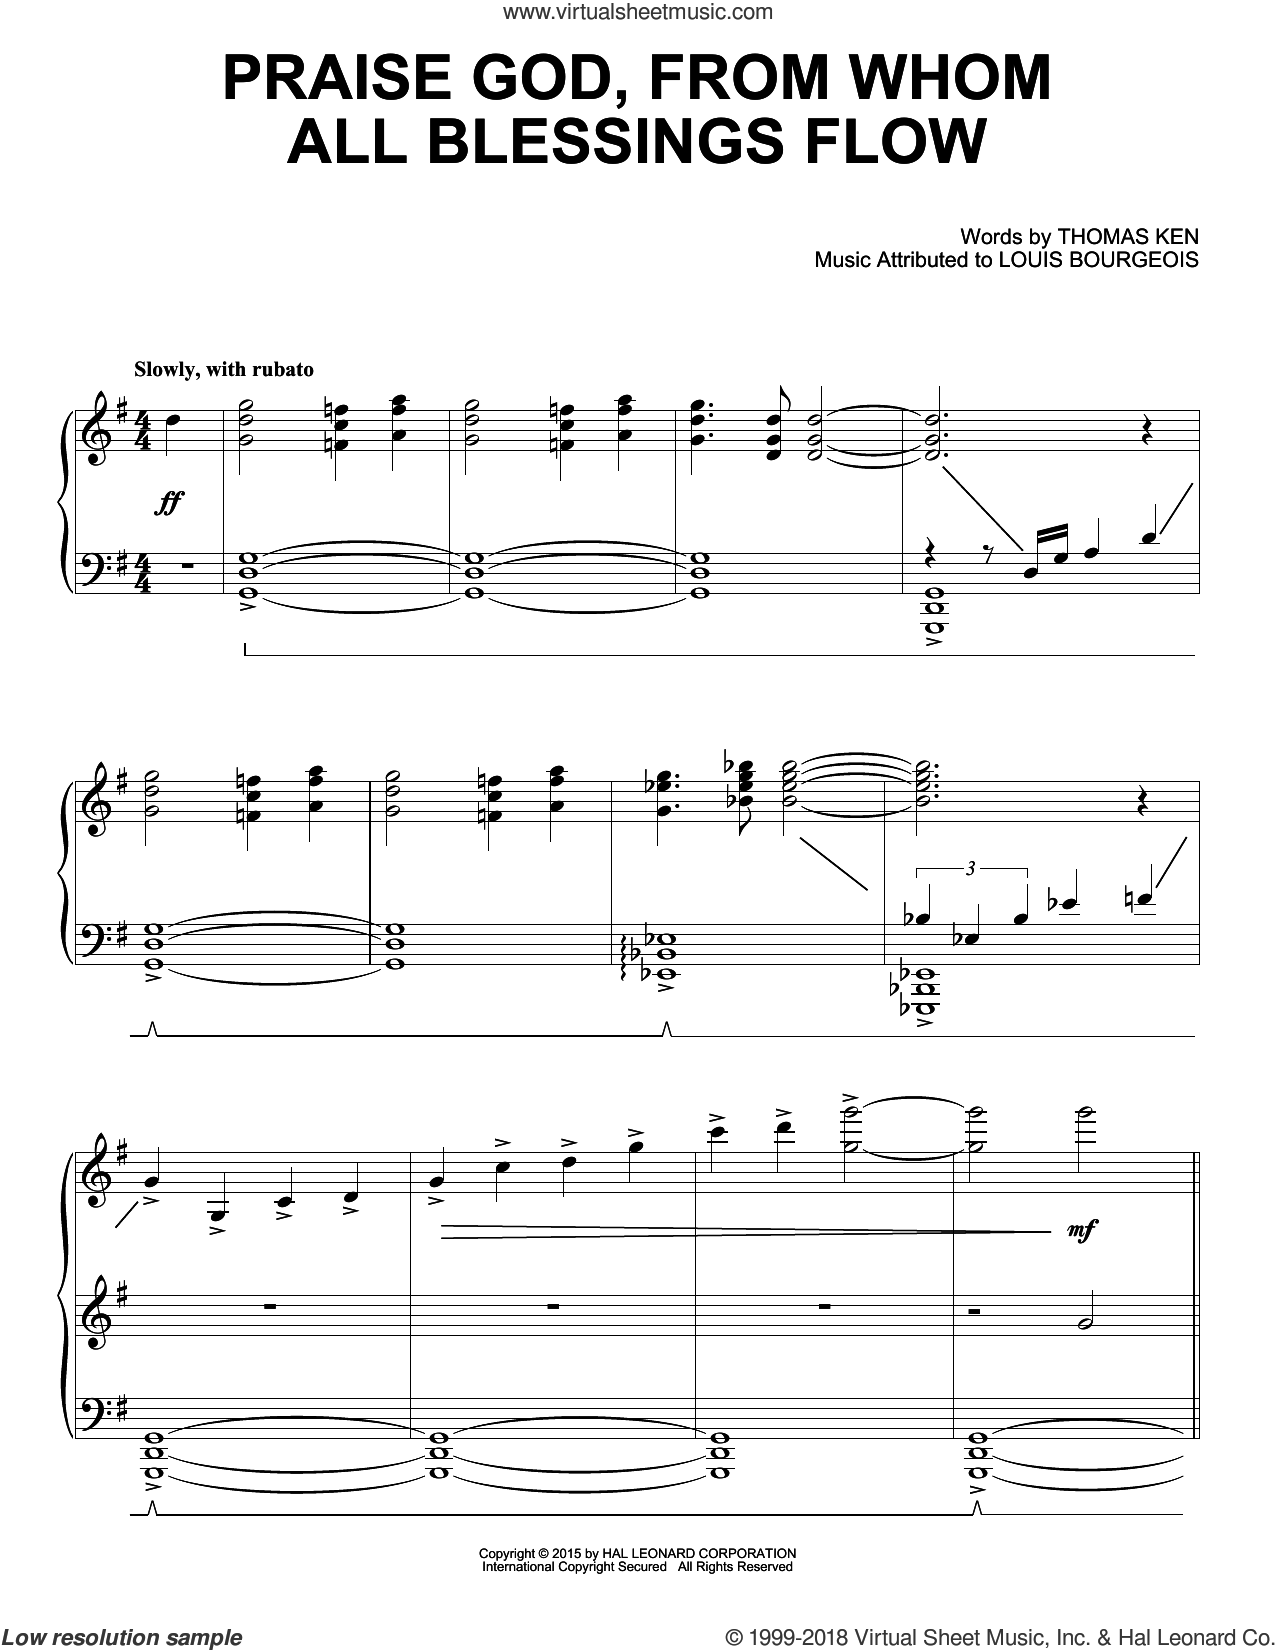 Praise God, From Whom All Blessings Flow sheet music for piano solo by Thomas Ken and Louis Bourgeois, intermediate skill level